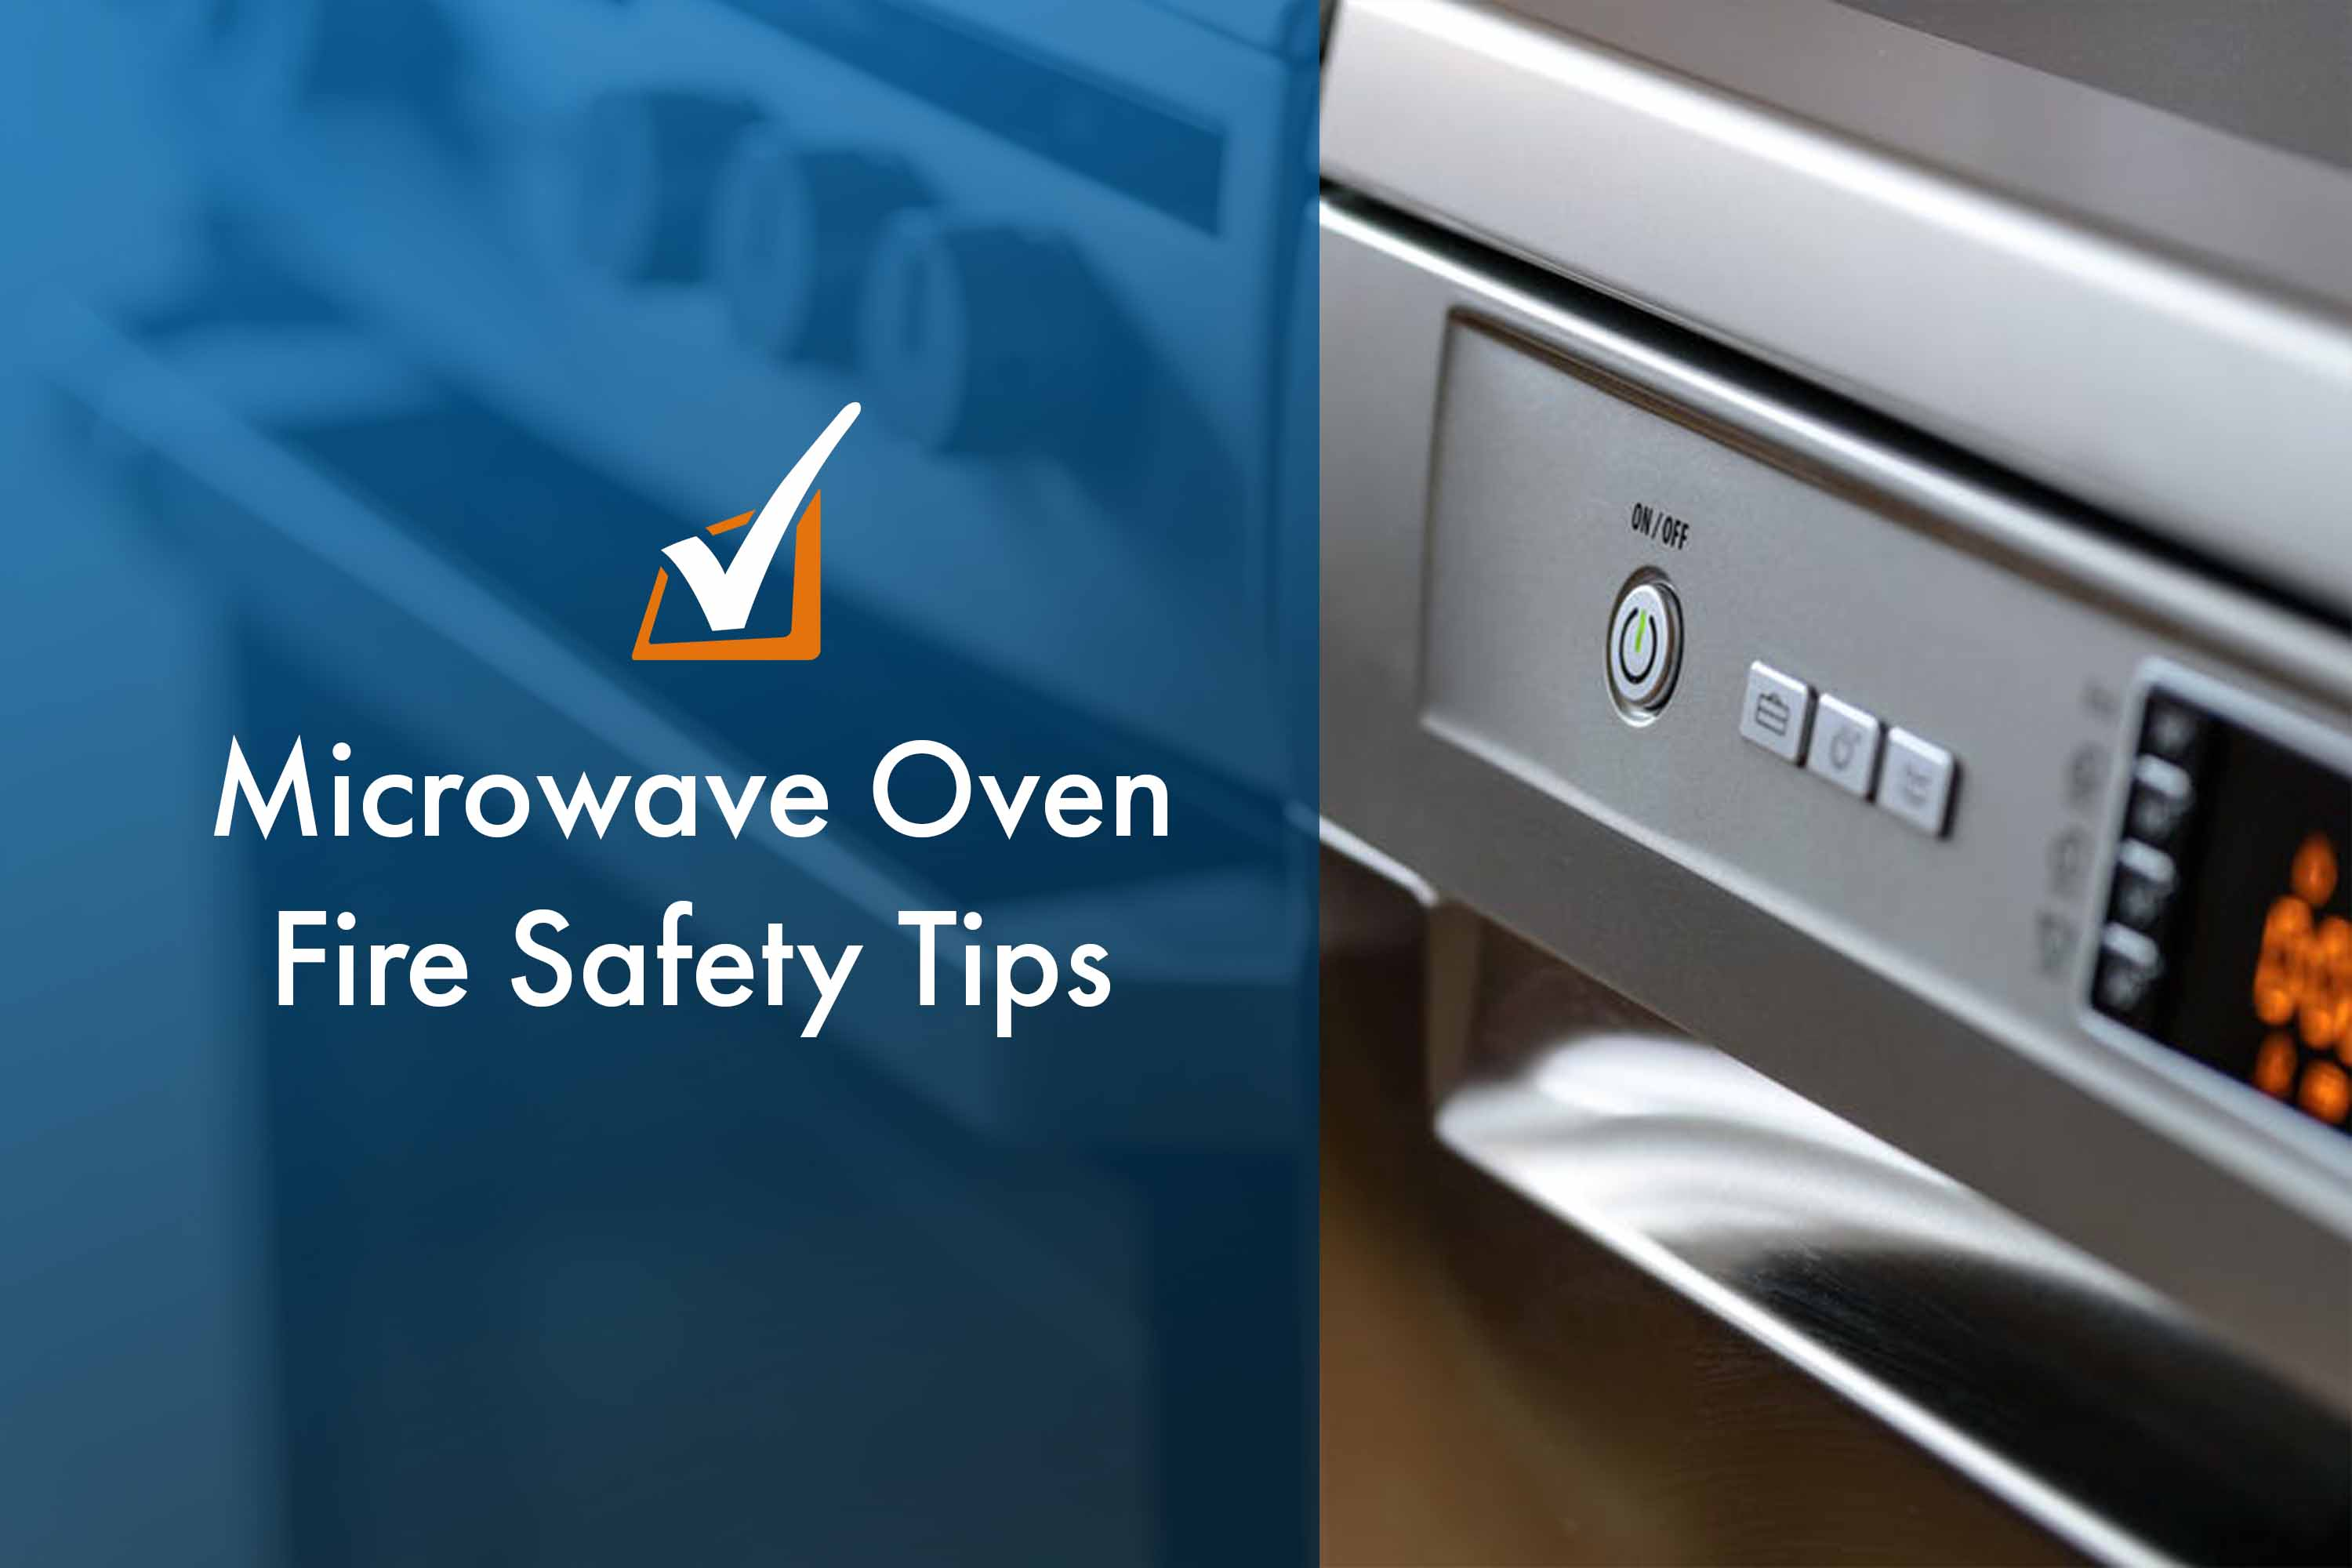 Microwave Oven Fire Safety Tips